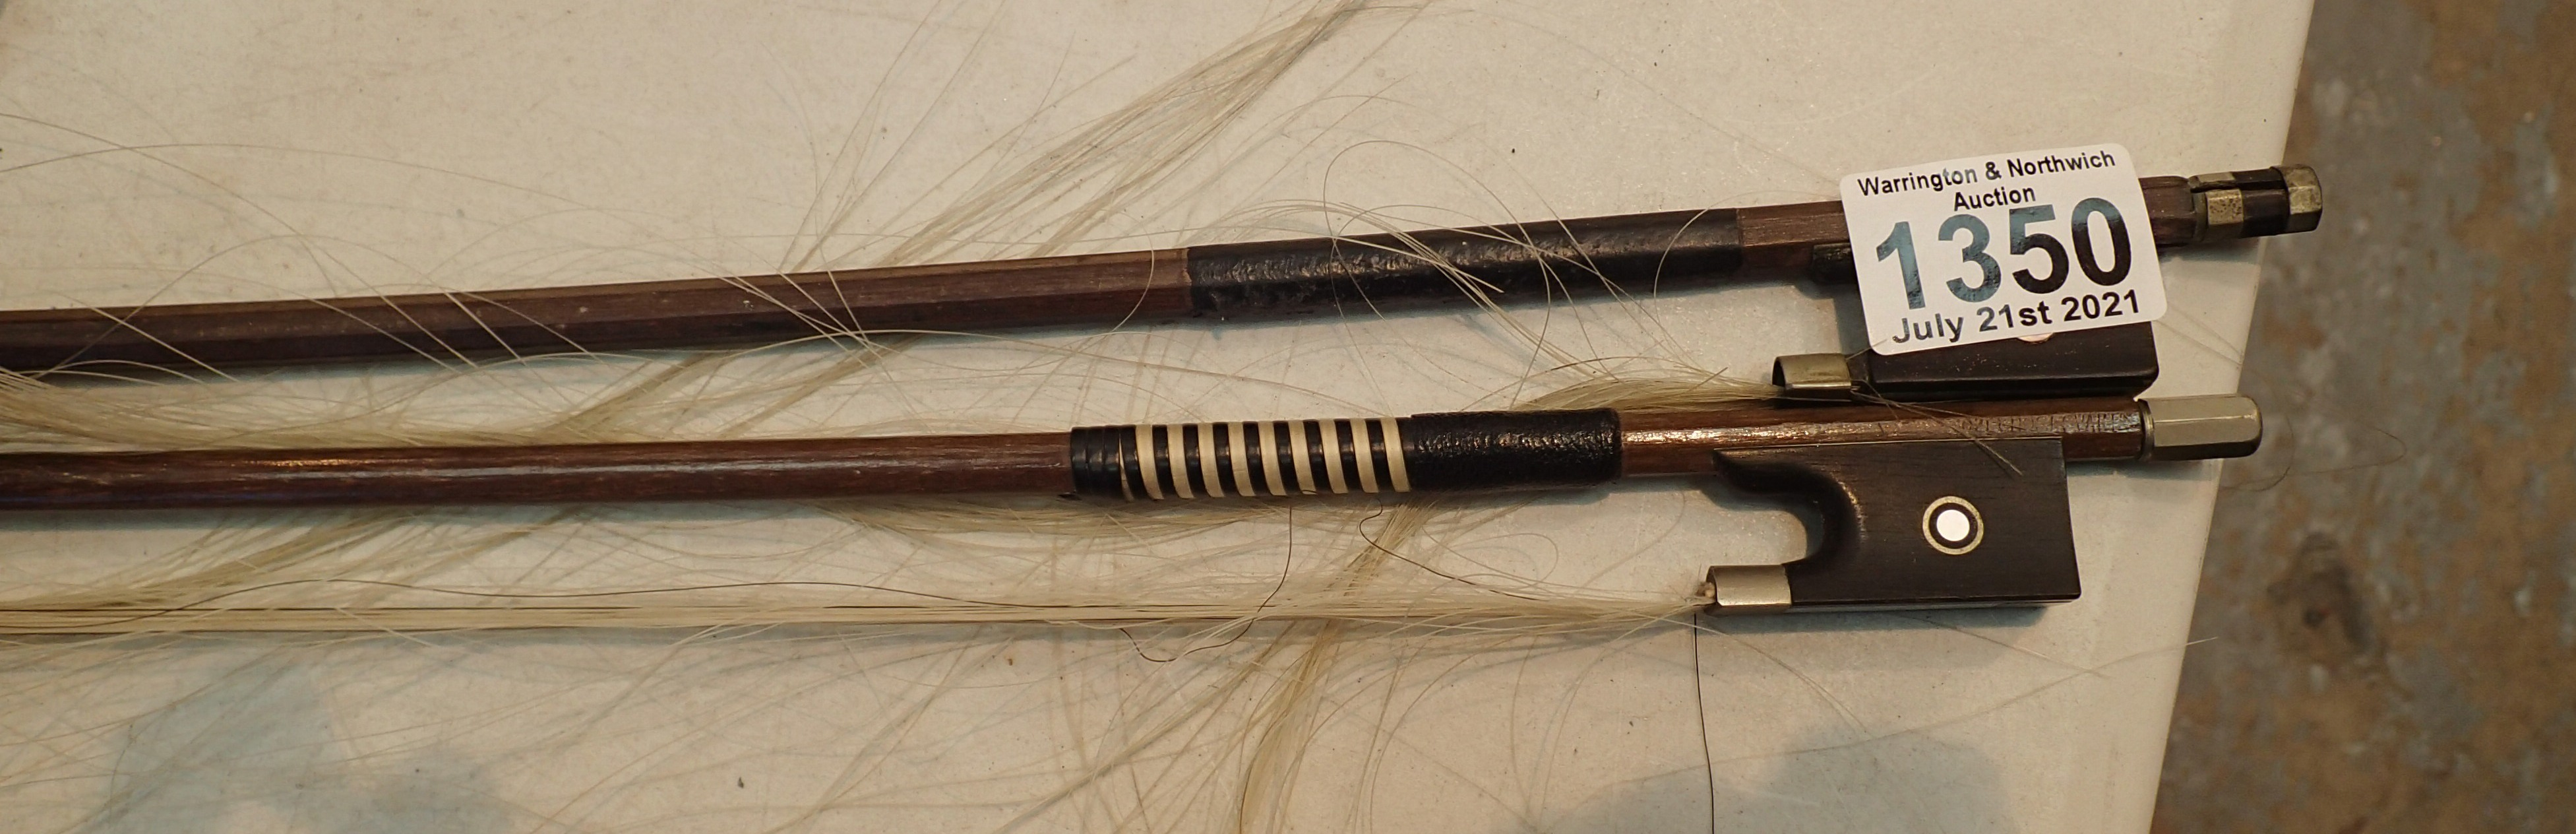 Two antique violin bows, unnamed. P&P Group 2 (£18+VAT for the first lot and £3+VAT for subsequent